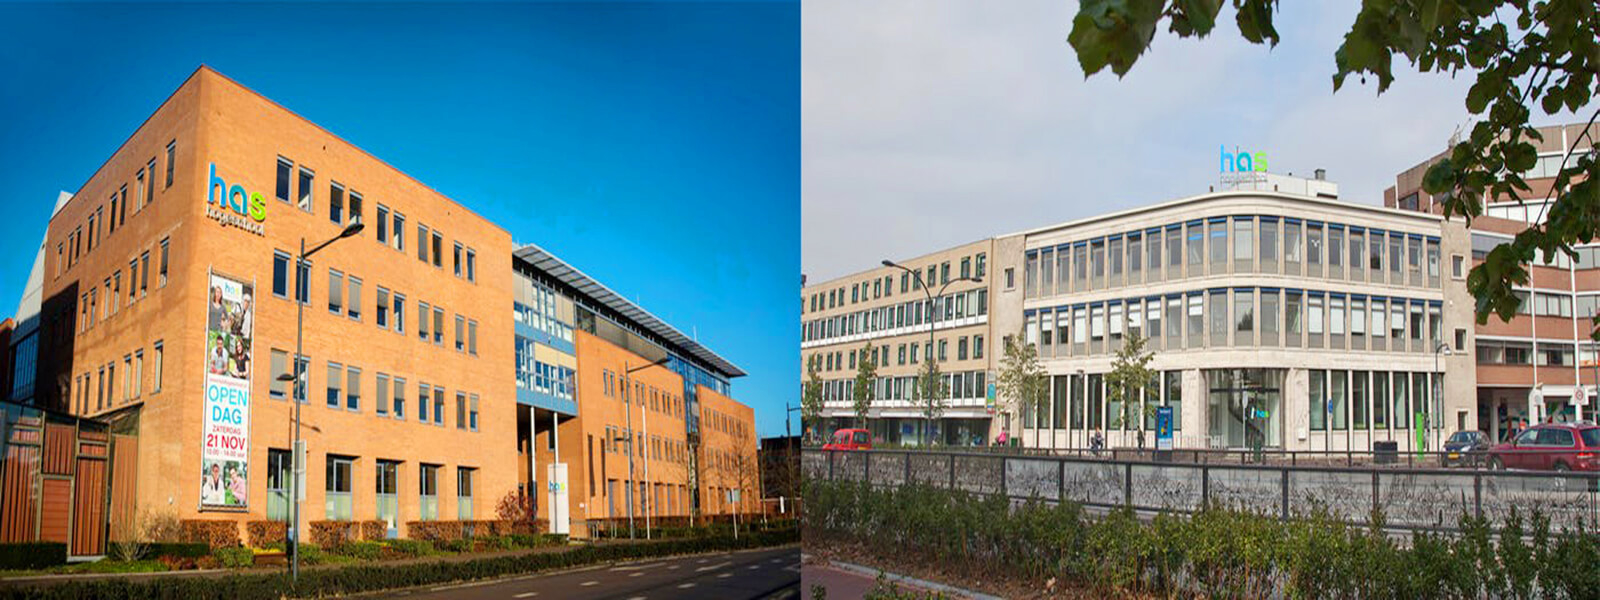 studyinholland-universitiesofappliedsciences-has building-'s-Hertogenbosch-venlo-holland